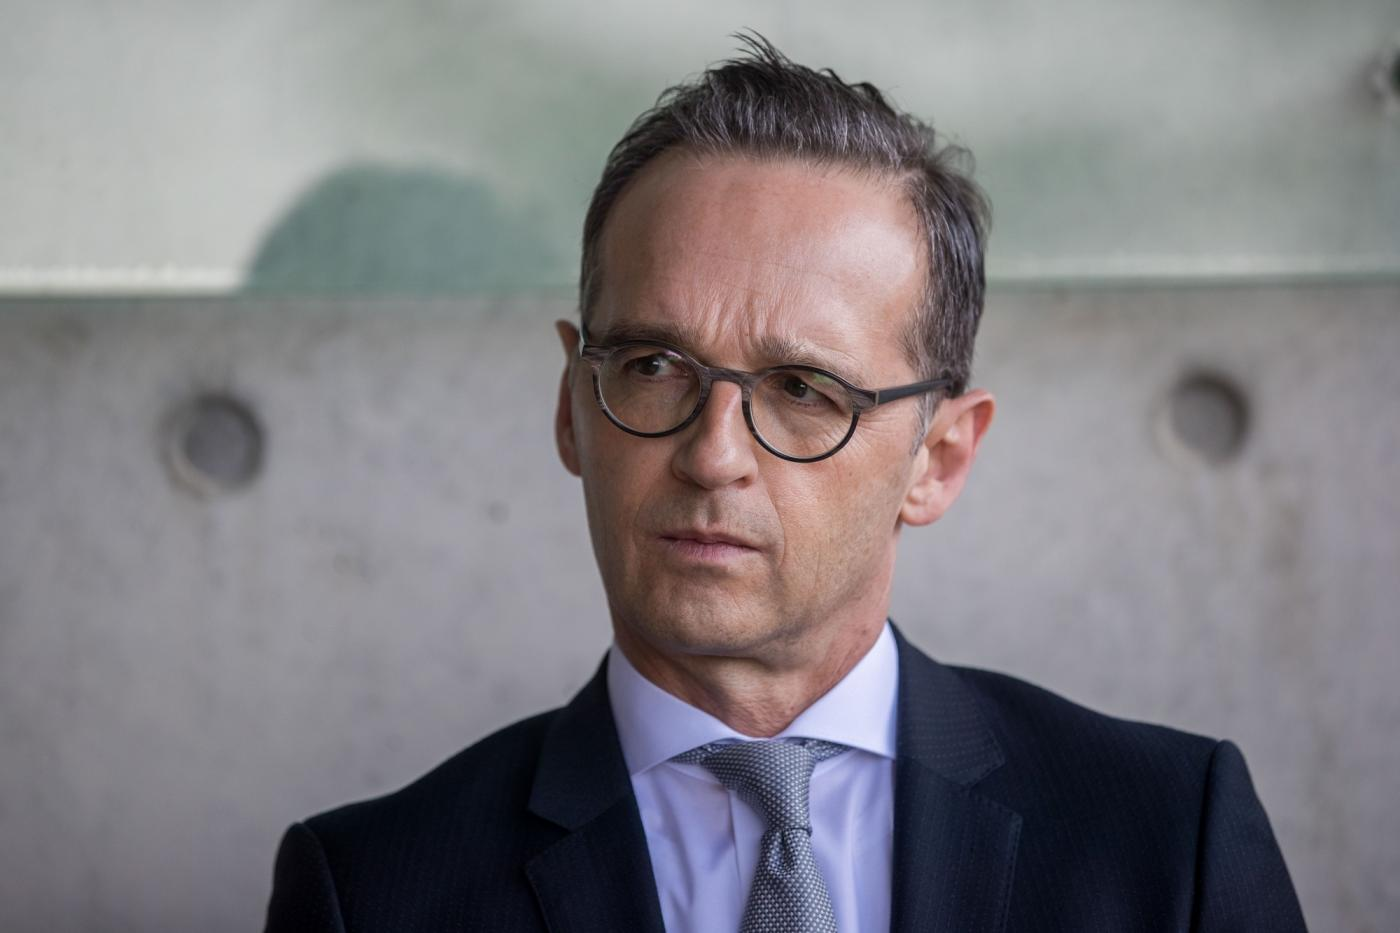 JERUSALEM, March 25, 2018 (Xinhua) -- German Foreign Minister Heiko Maas visits Yad Vashem, the Holocaust Memorial and Museum located in Jerusalem, March 25, 2018. (Xinhua/JINI/IANS) by .